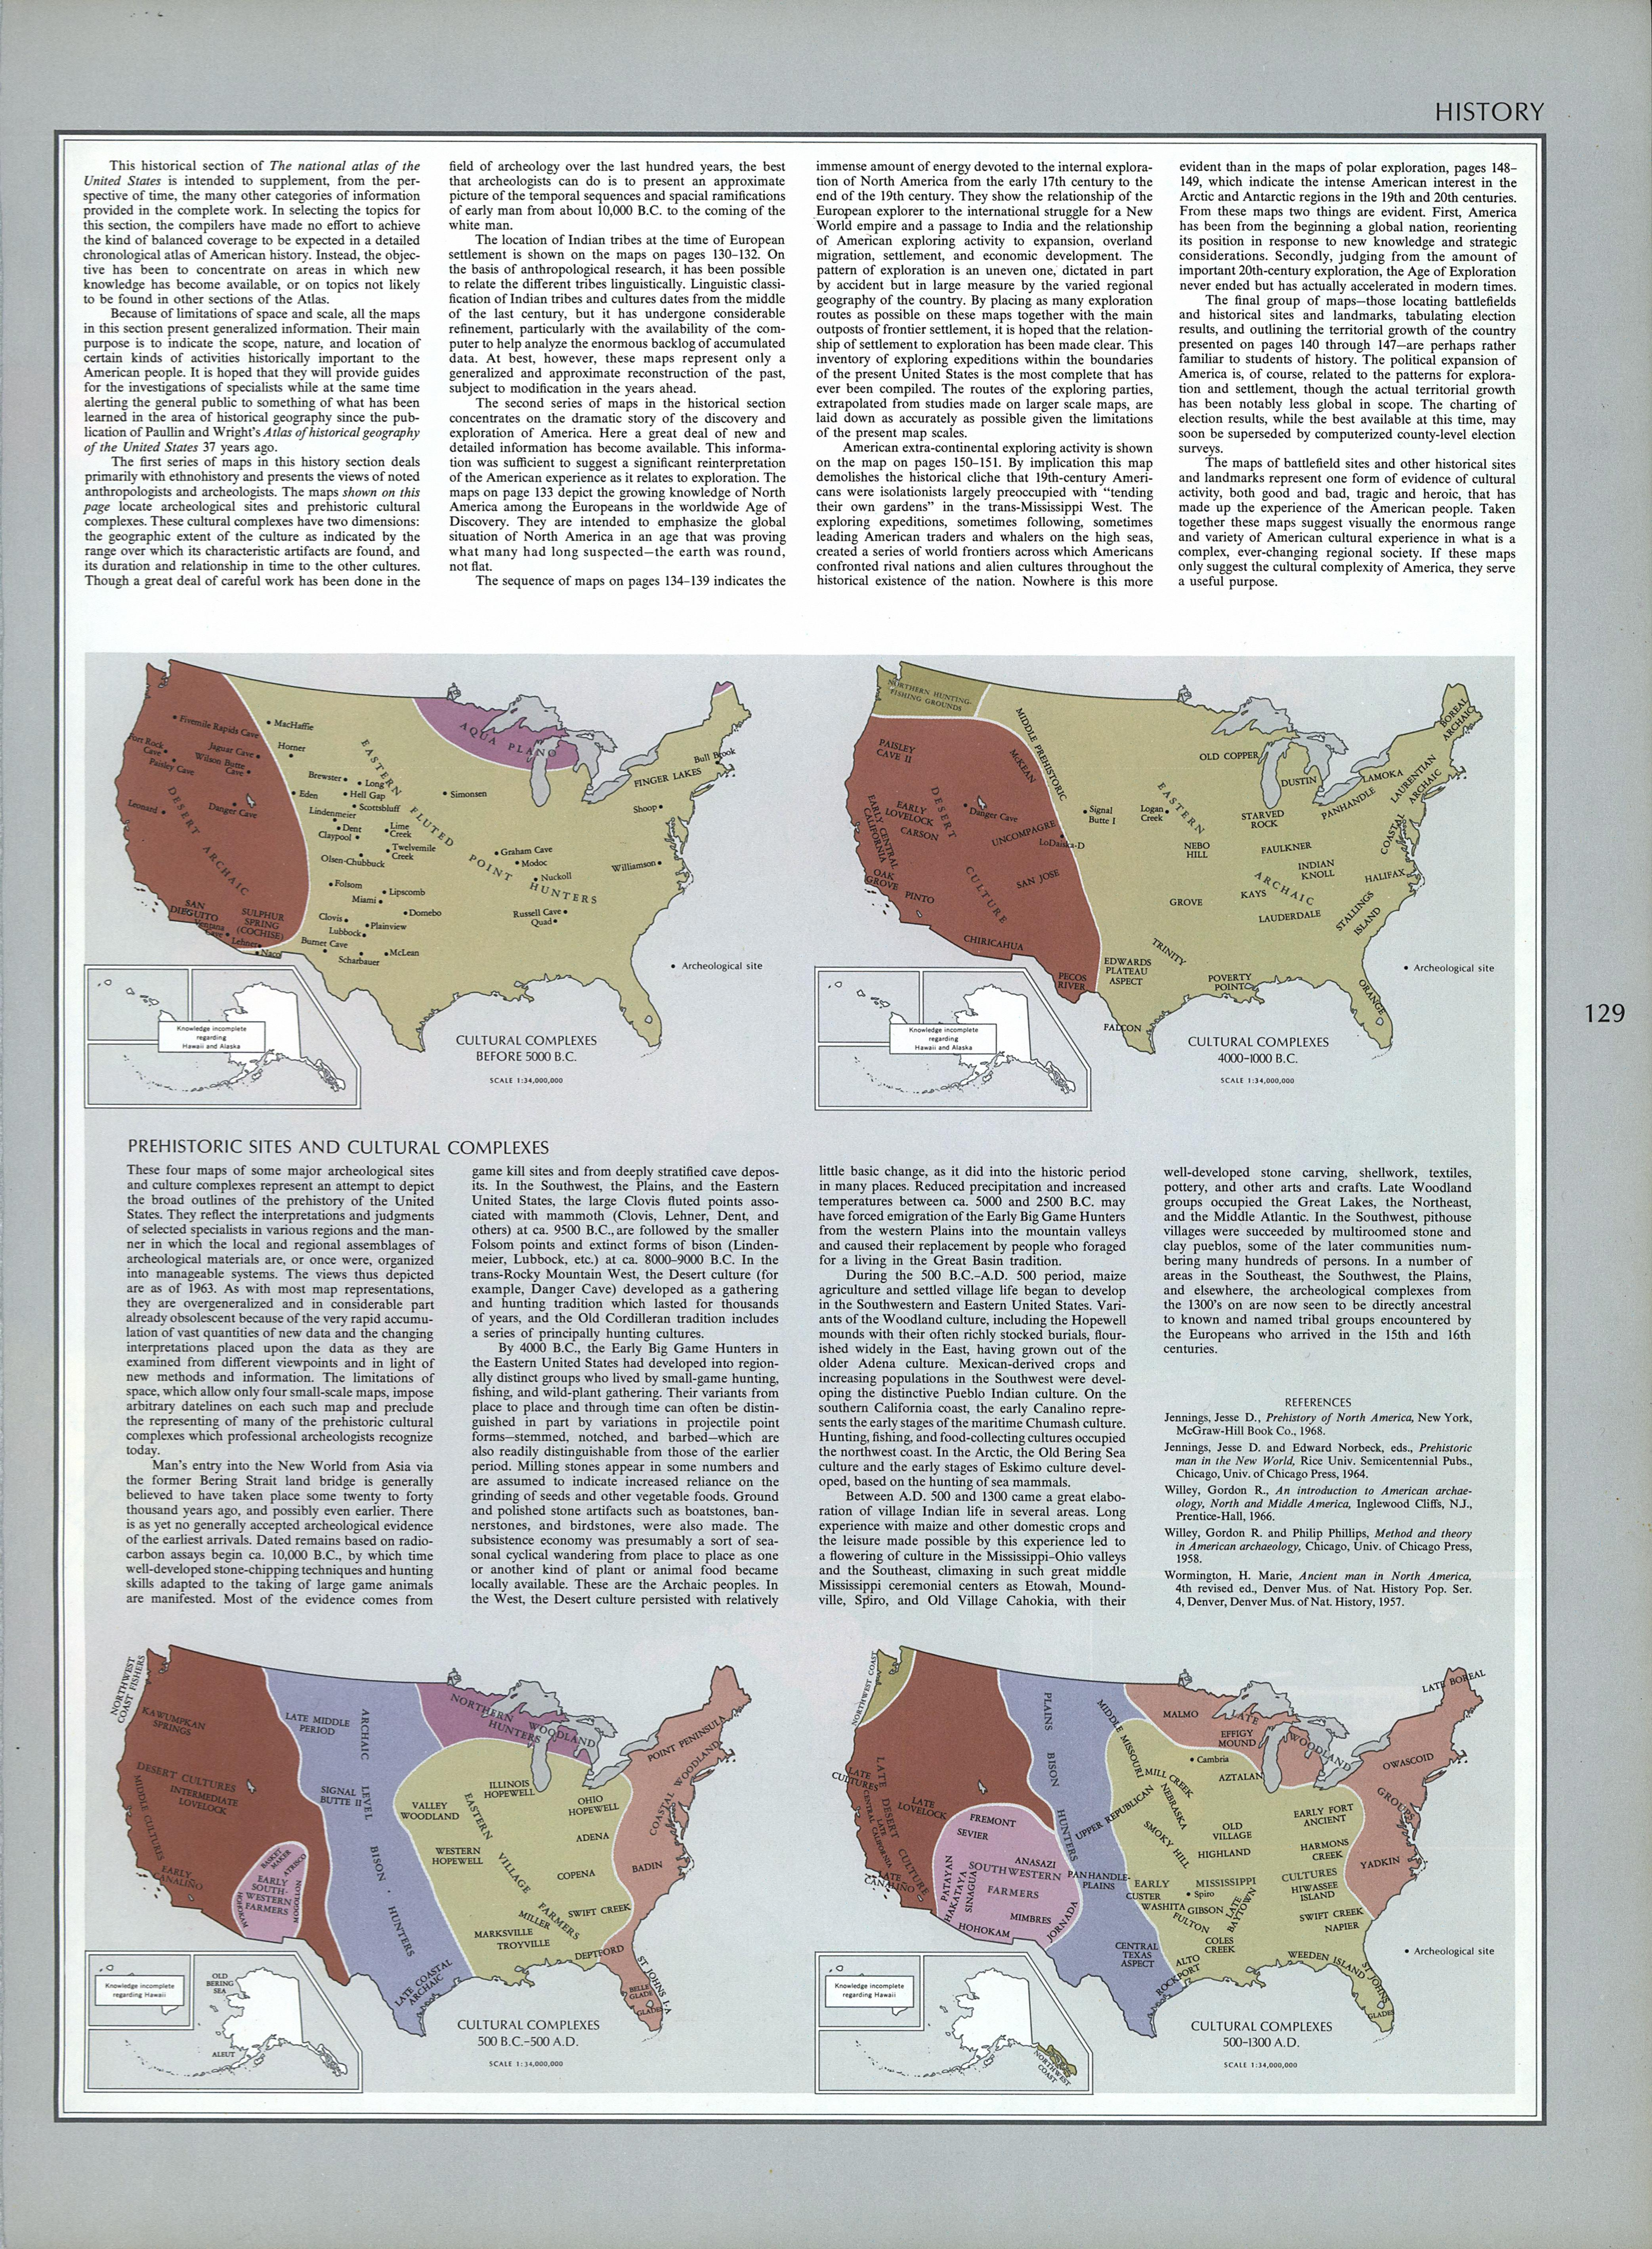 Documents For The Study Of American History US History AMDOCS - Map of native american banks in us